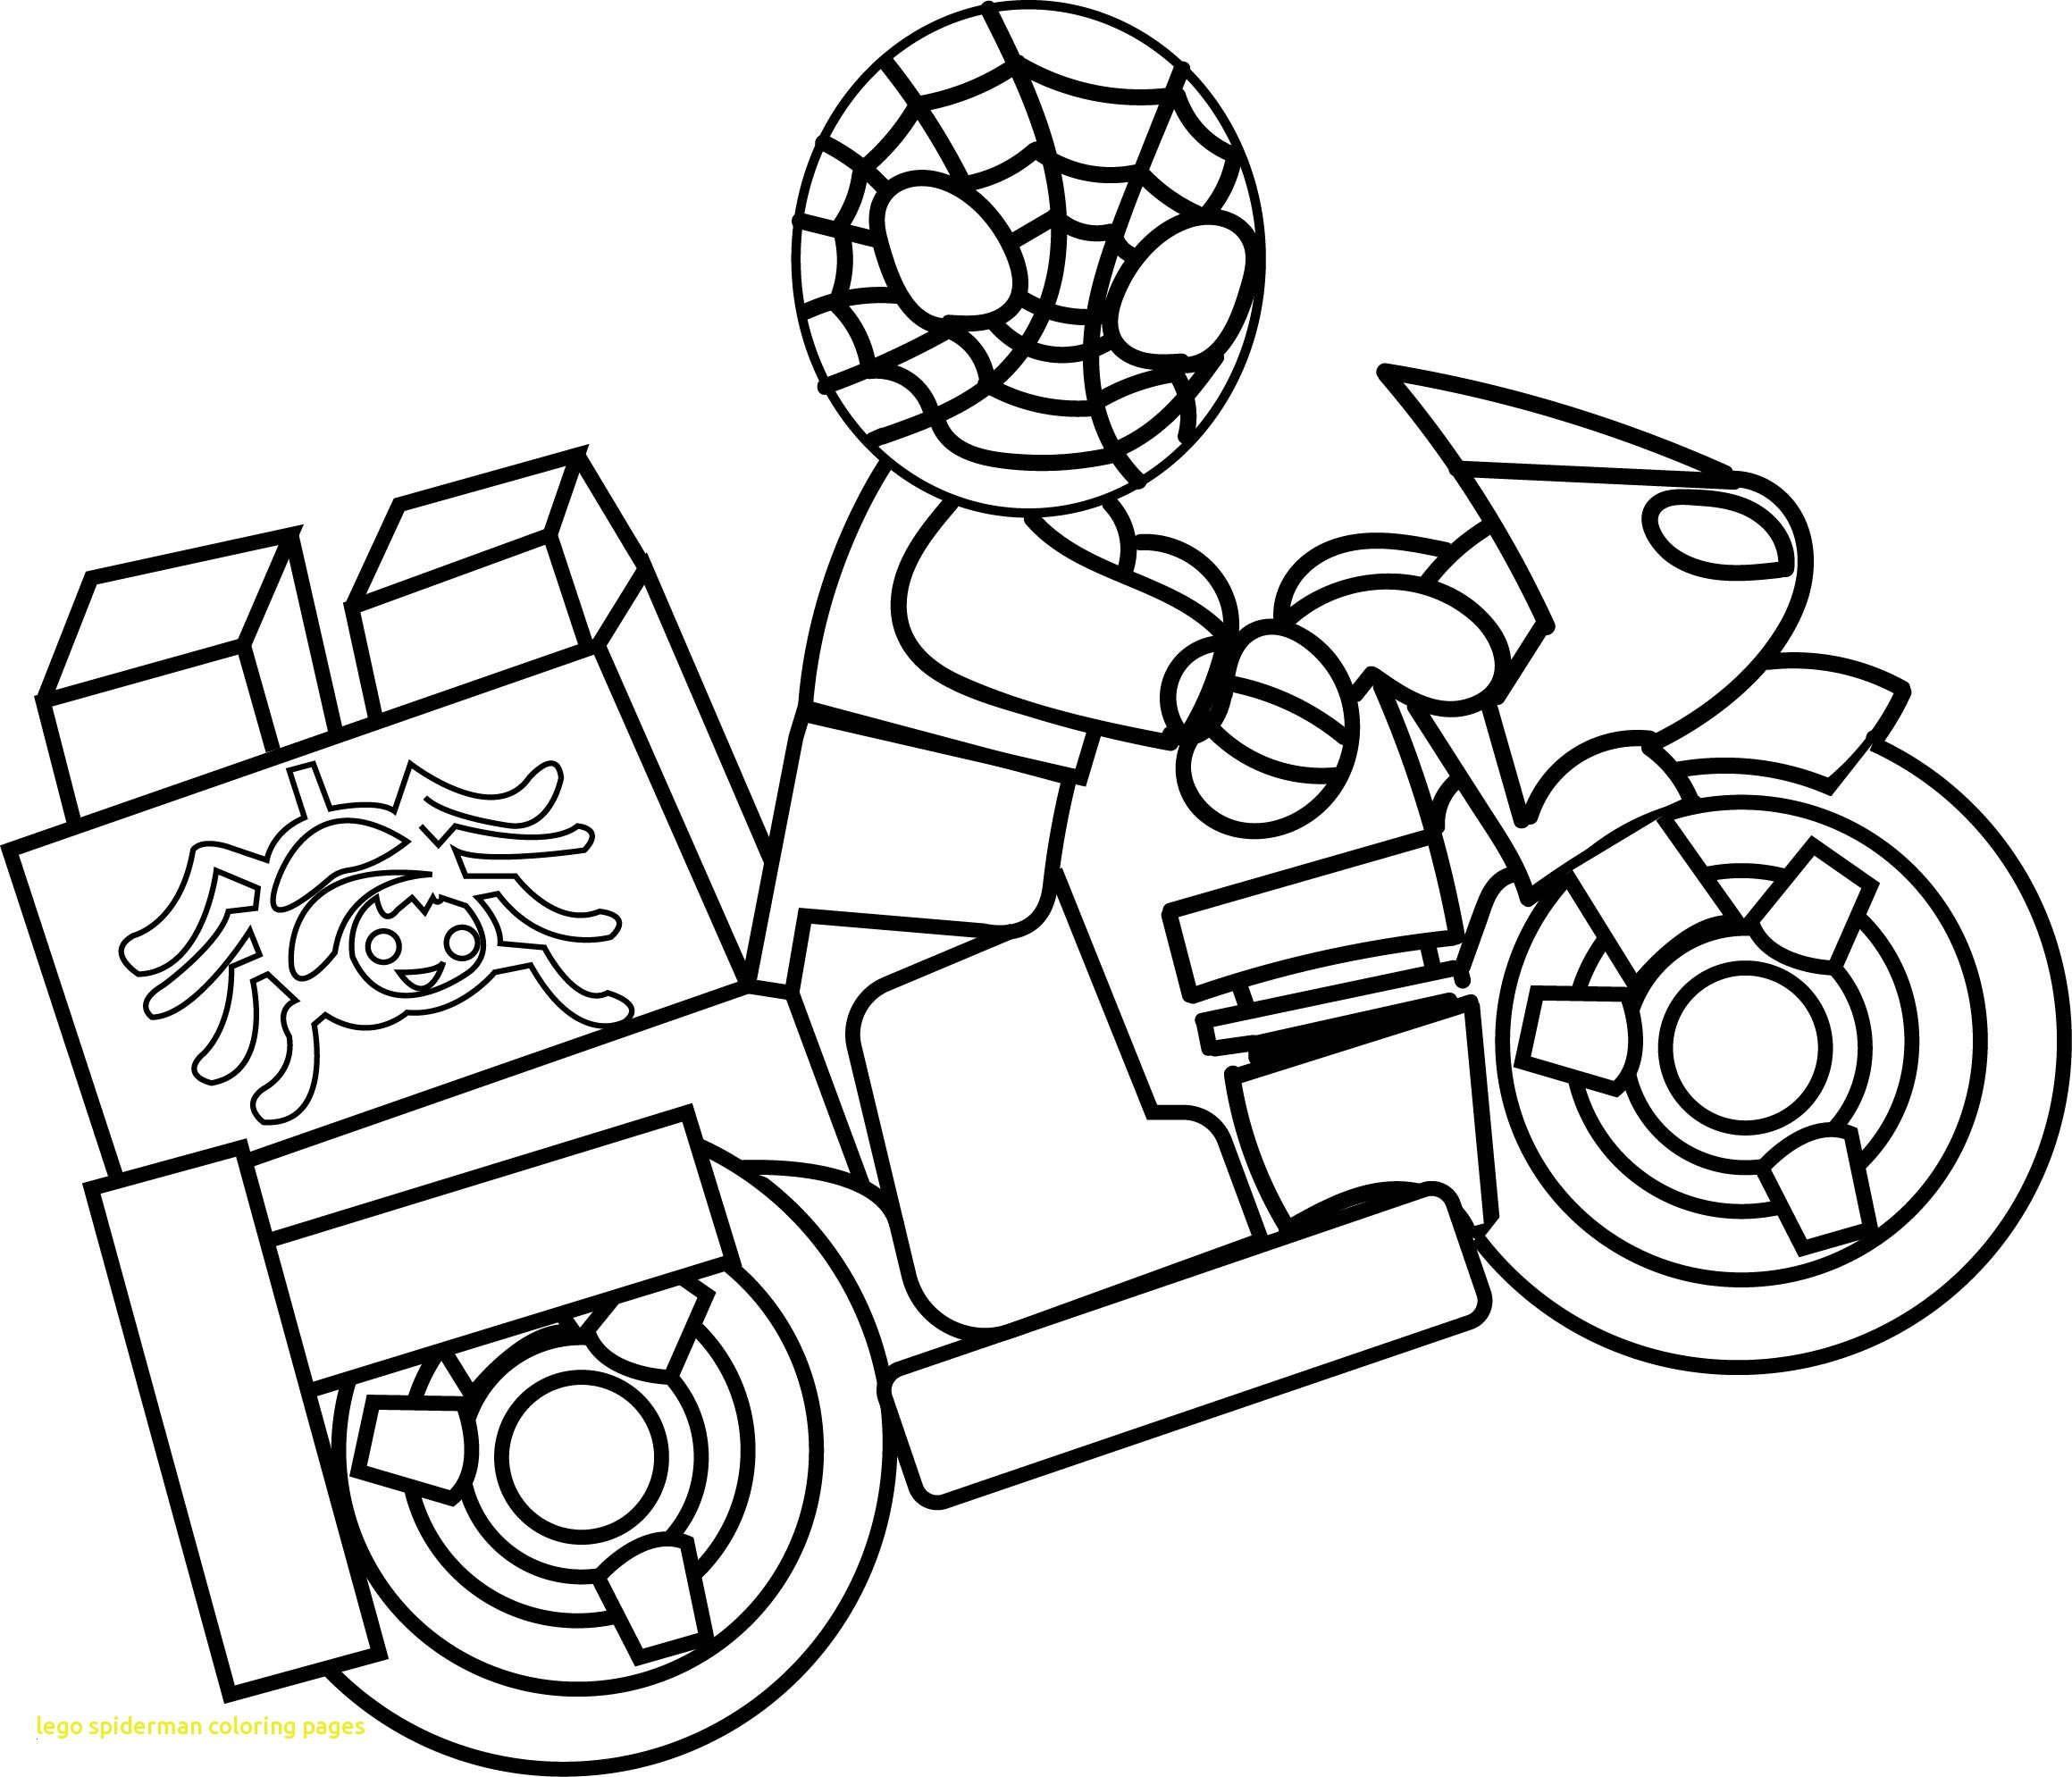 640 Colouring Pages Lego Spiderman Download Free Images